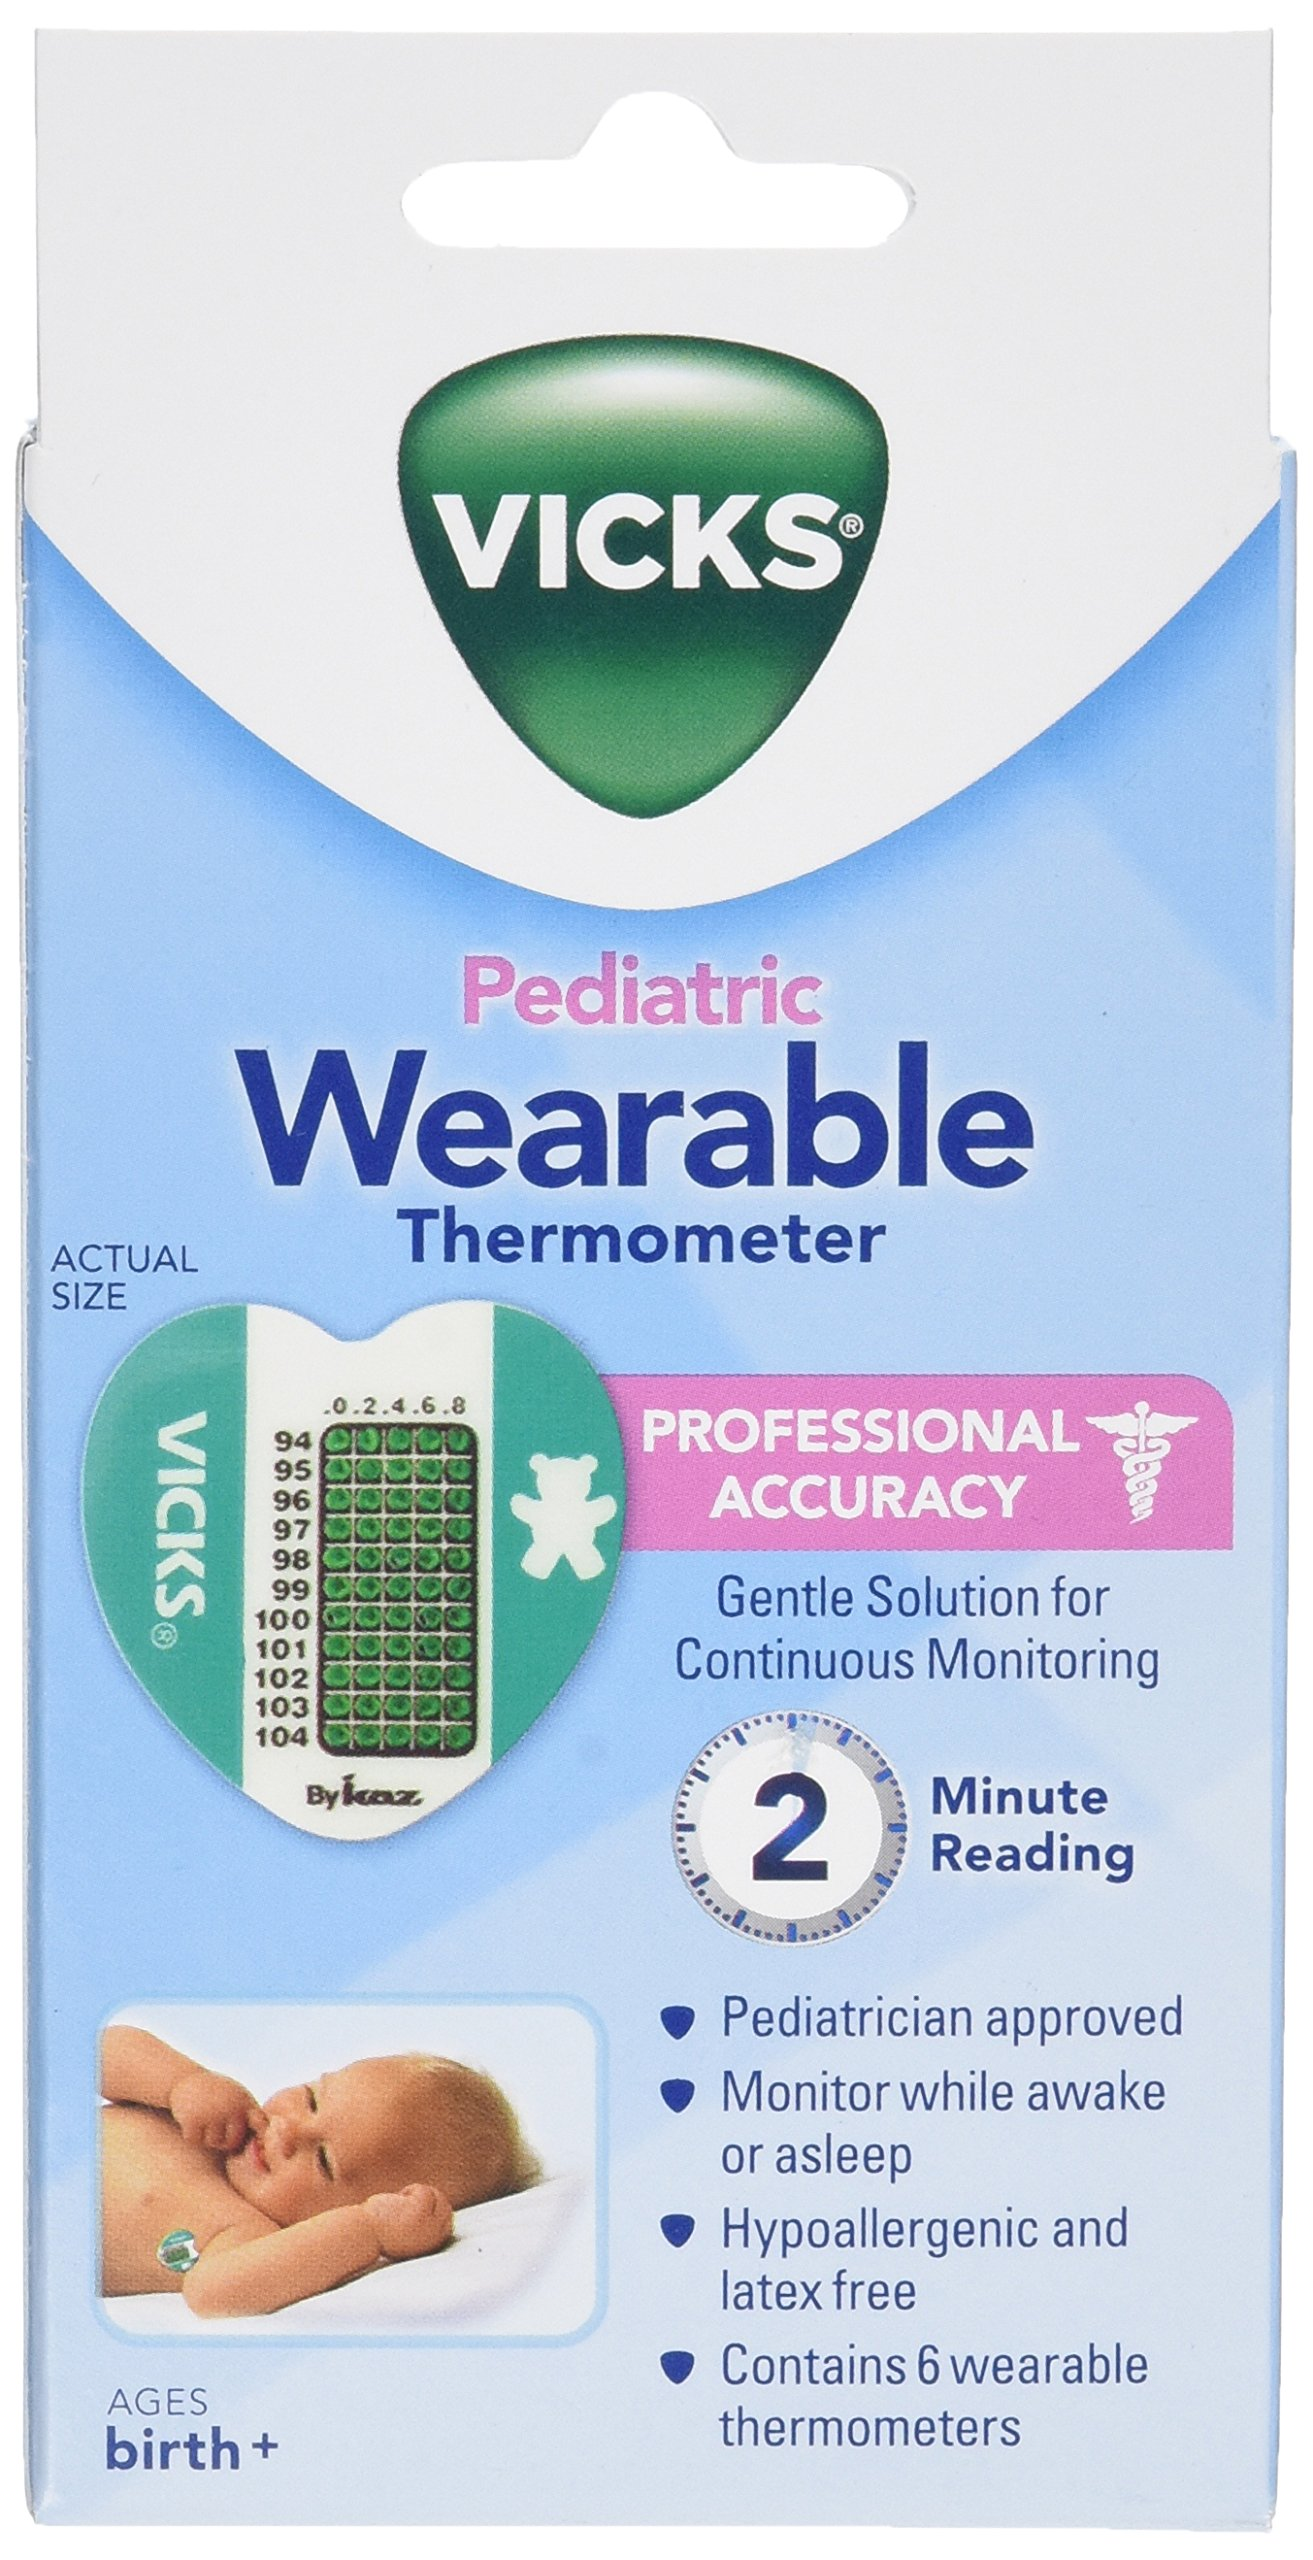 Vicks Wearable Thermometers, 6 thermometers by Vicks